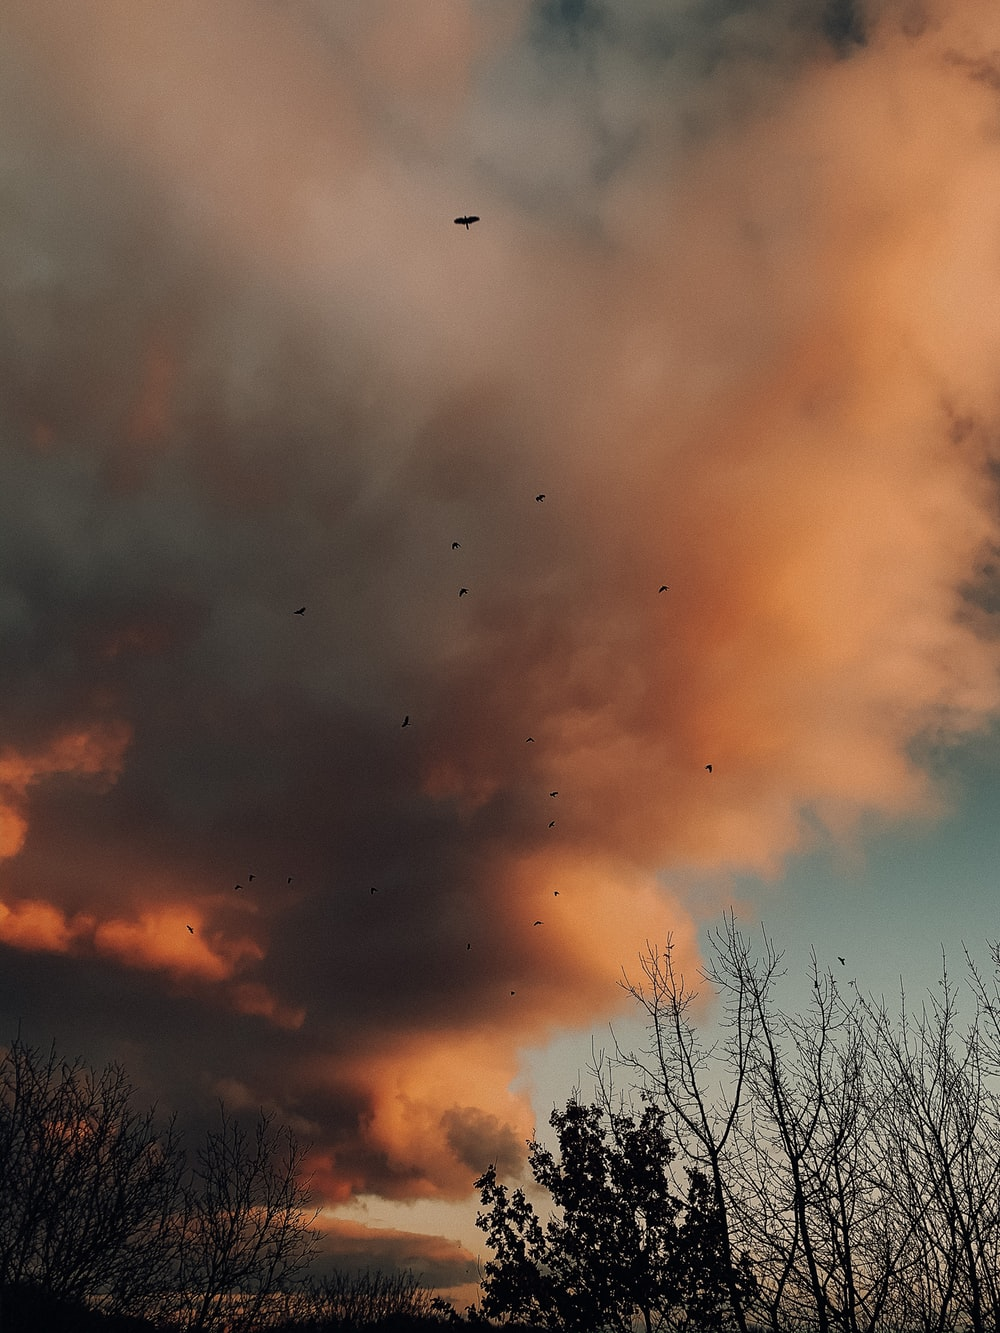 birds flying over trees during sunset